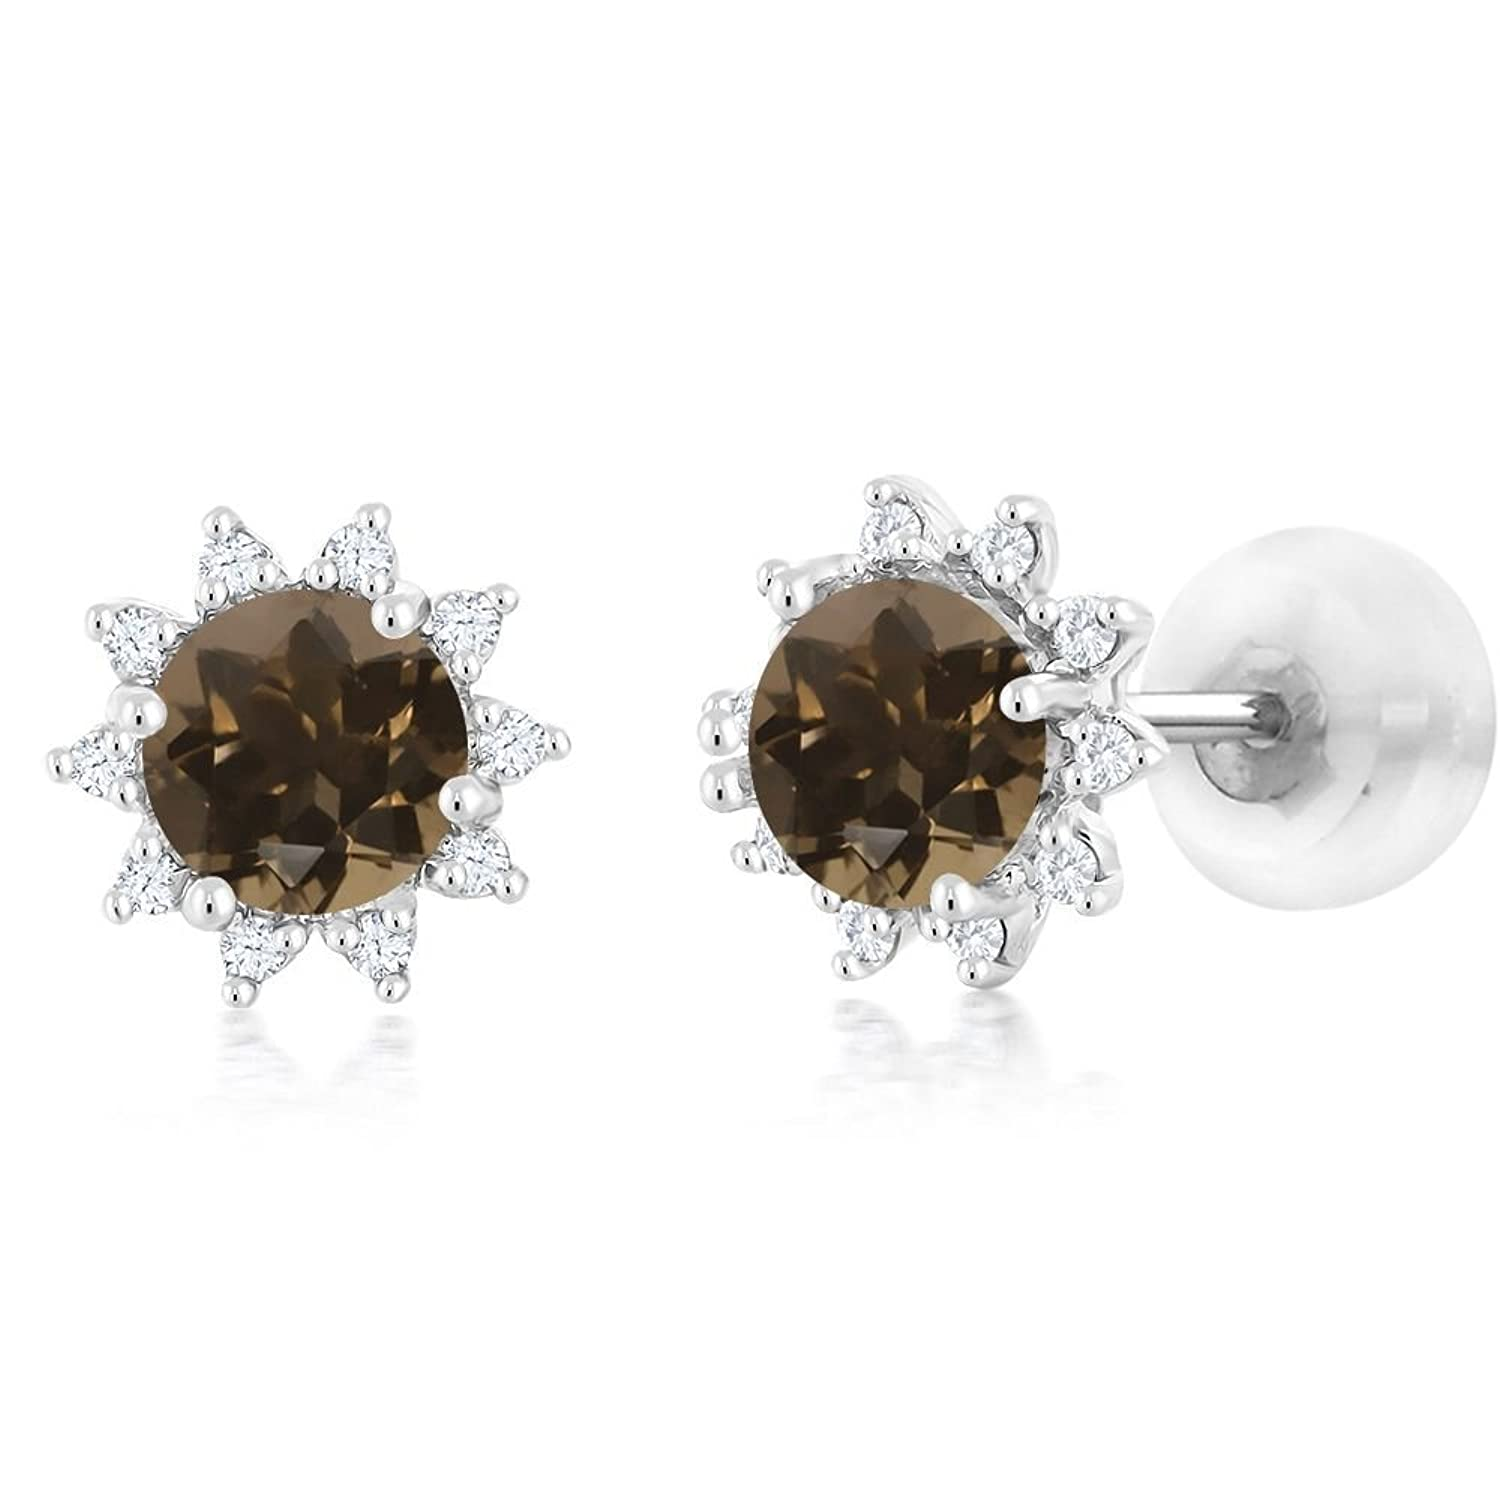 18K White Gold Diamond Stud Earrings Round 4mm Brown Smoky Quartz 0.52 Ct